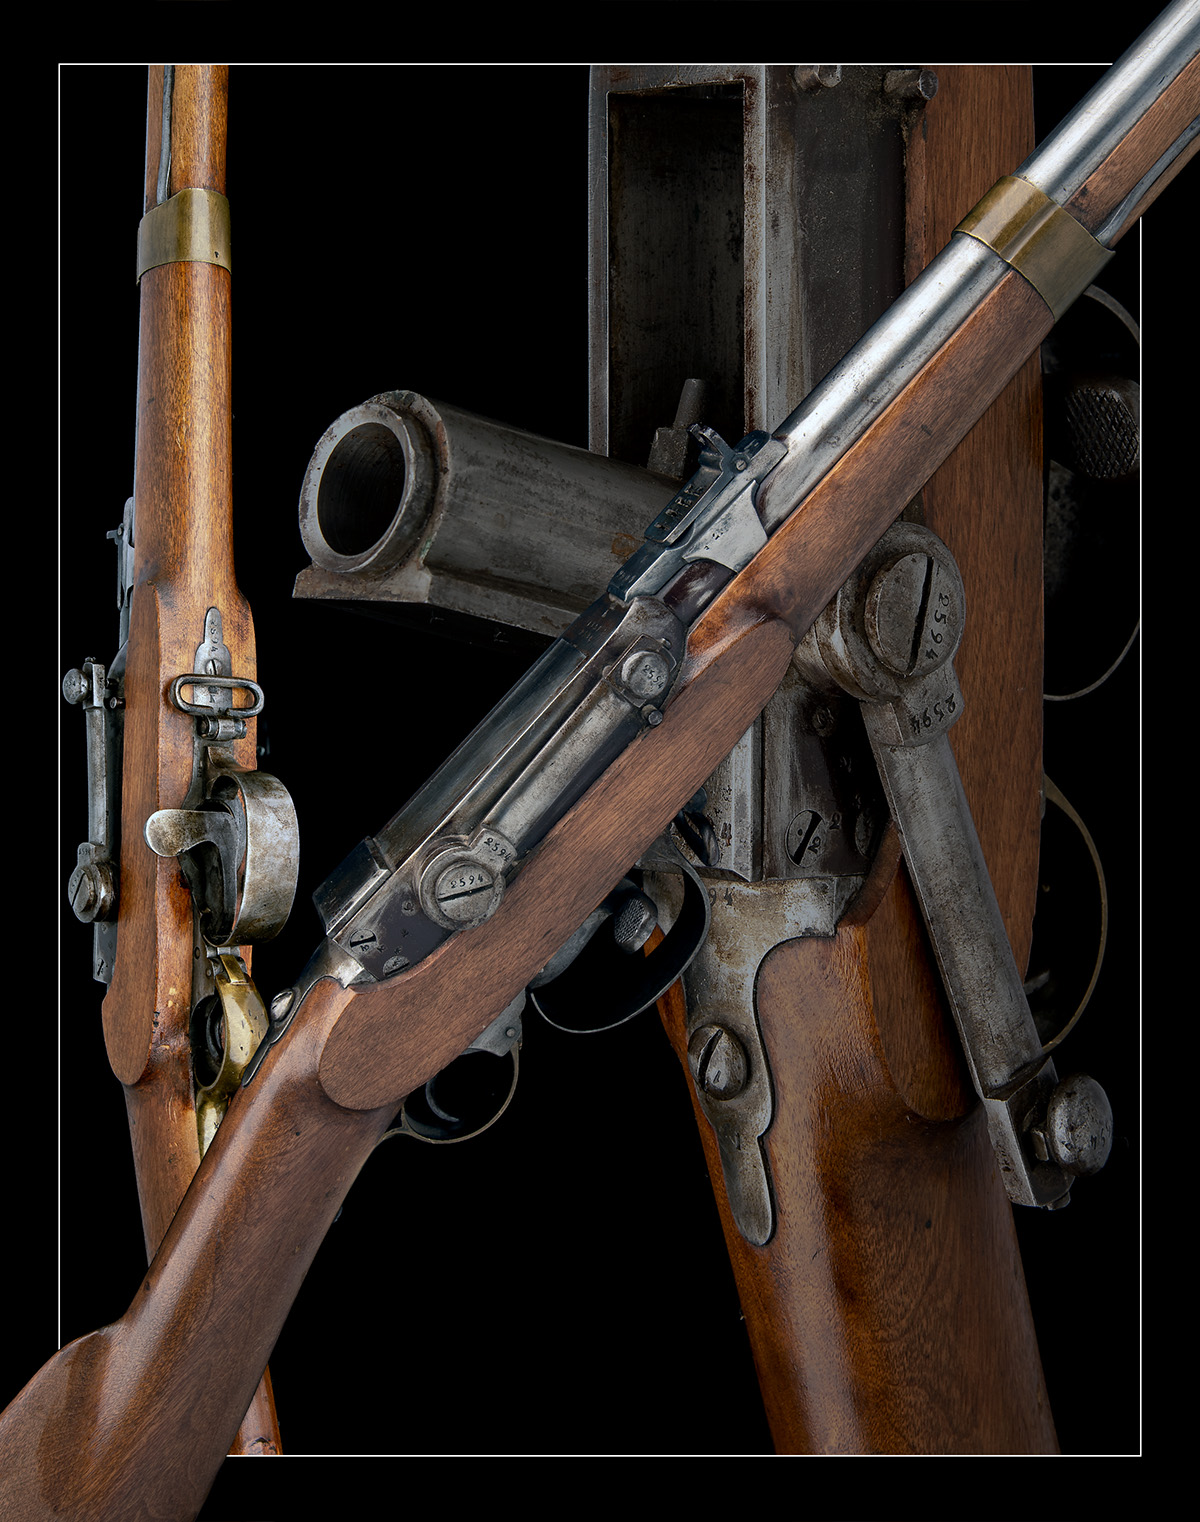 A RARE 17.5mm PERCUSSION BREECH-LOADING SERVICE-RIFLE, MODEL 'NORWEGIAN KAMMERLADER', serial no. - Image 10 of 10